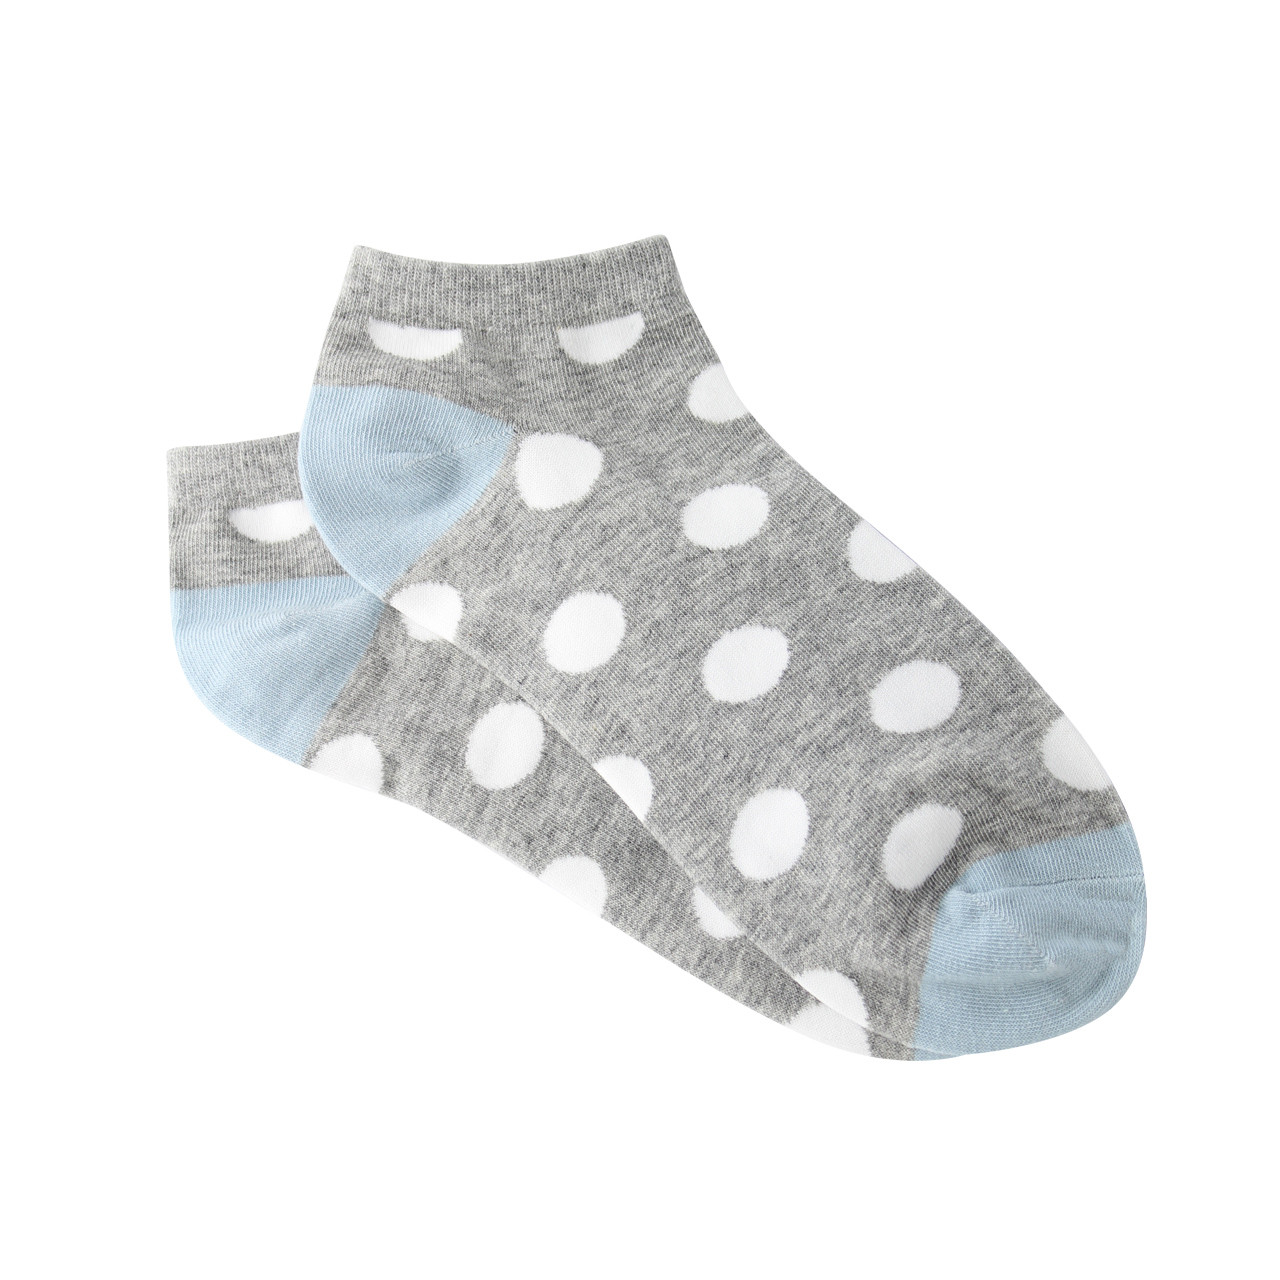 f9077823bcb804 ... Sock Cafe Women's PK1 Mode Spot Cotton Low Cut - Grey Marle and Mineral  Blue. Image 1